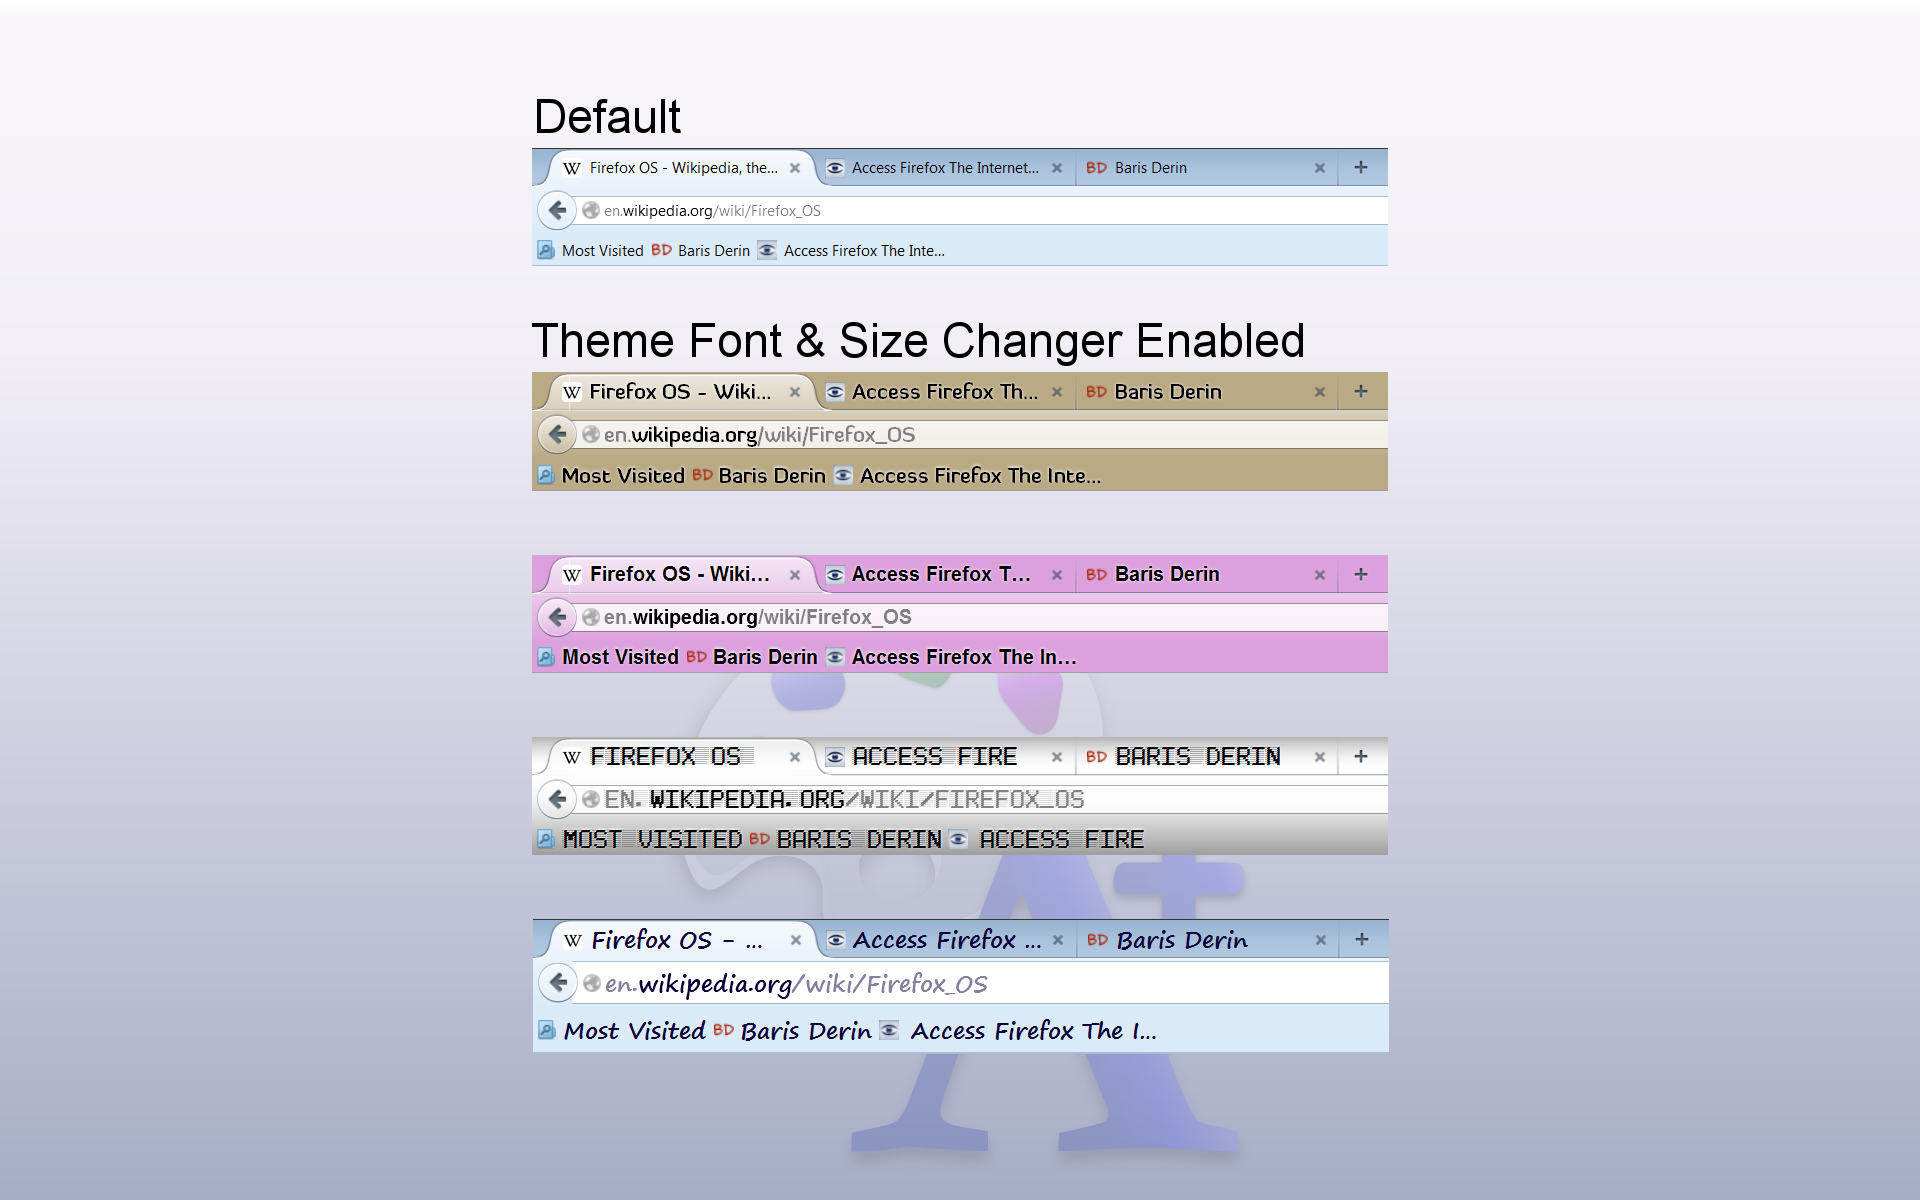 Theme Font & Size Changer: Change the font size and font